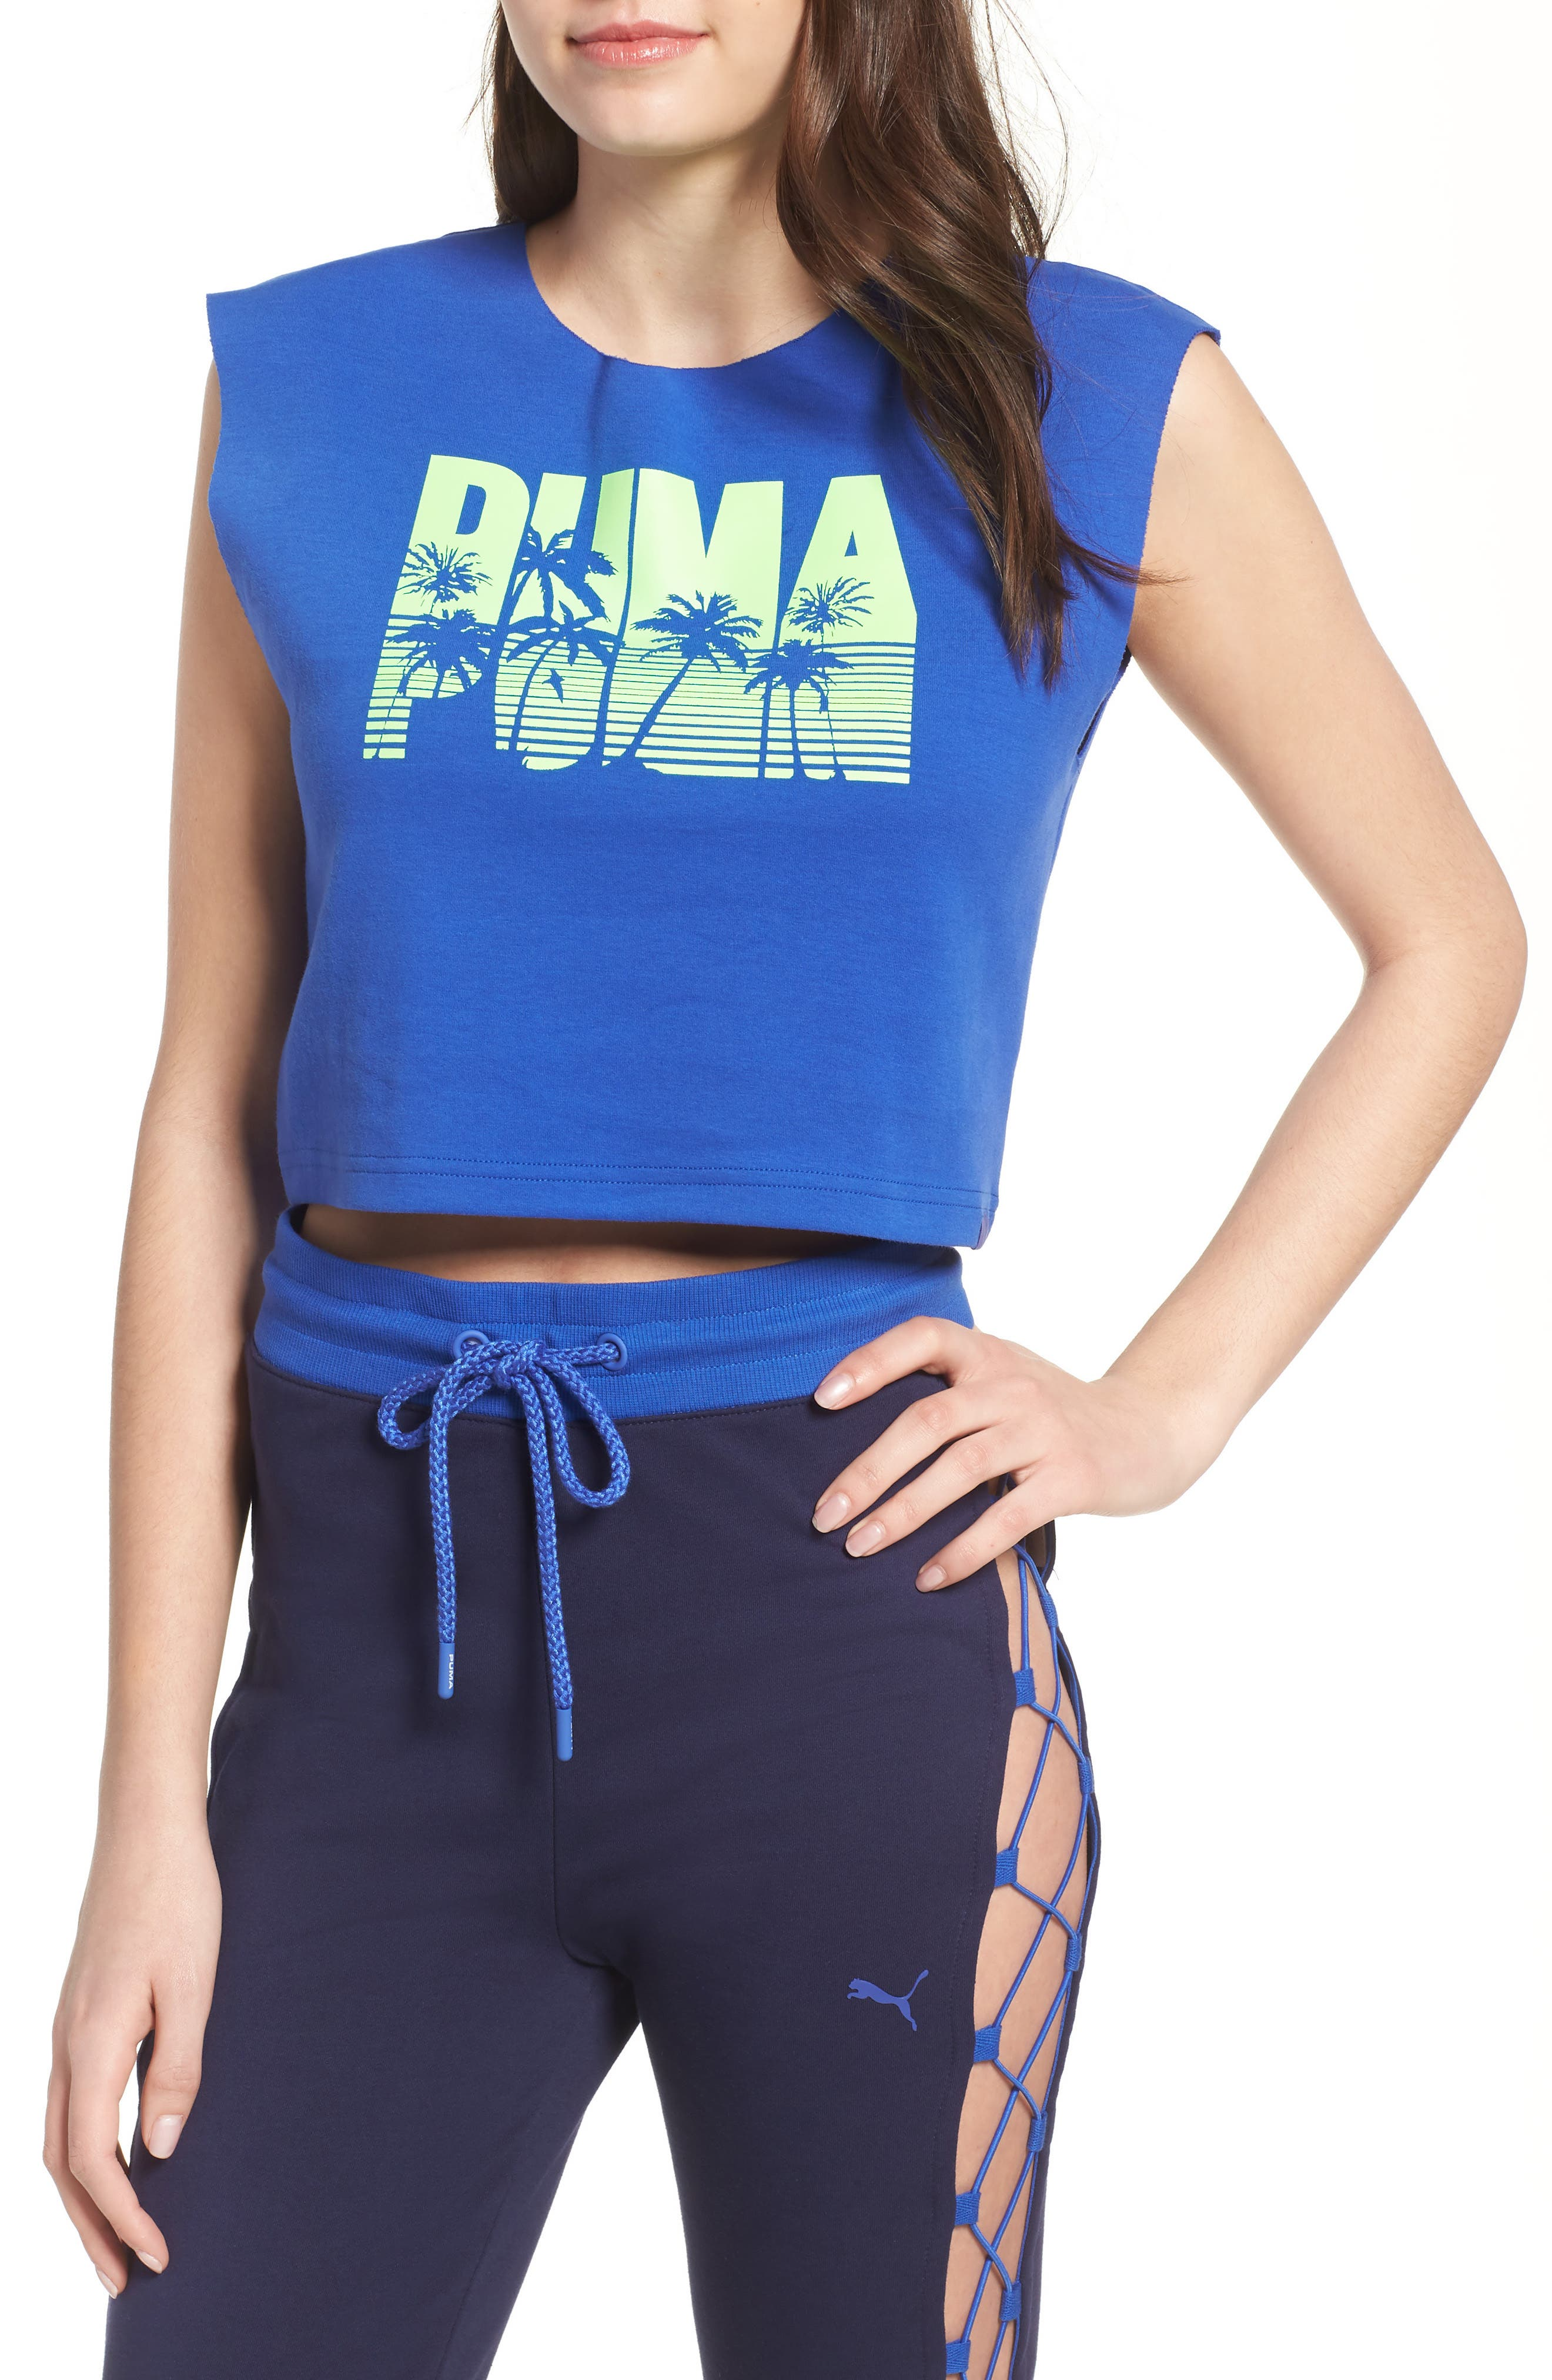 cropped logo top - Blue Fenty Puma by Rihanna Sale Latest Collections nhNdh8z0